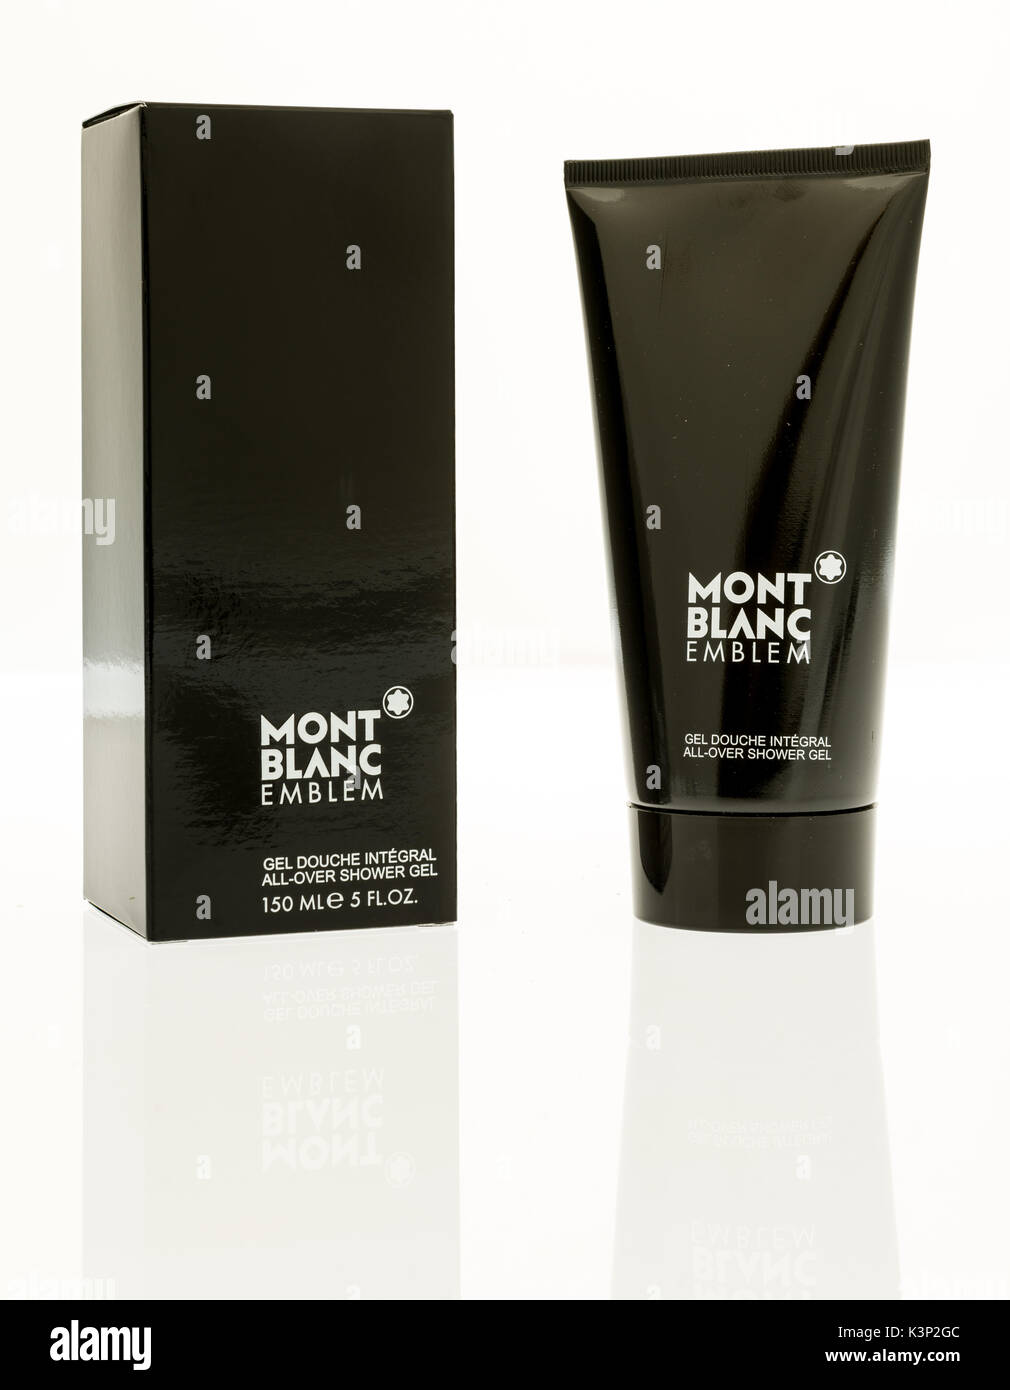 Winneconne, WI - 1 September 2017:  A tube of Mont Blanc Emblem shower gel on an isolated background. - Stock Image